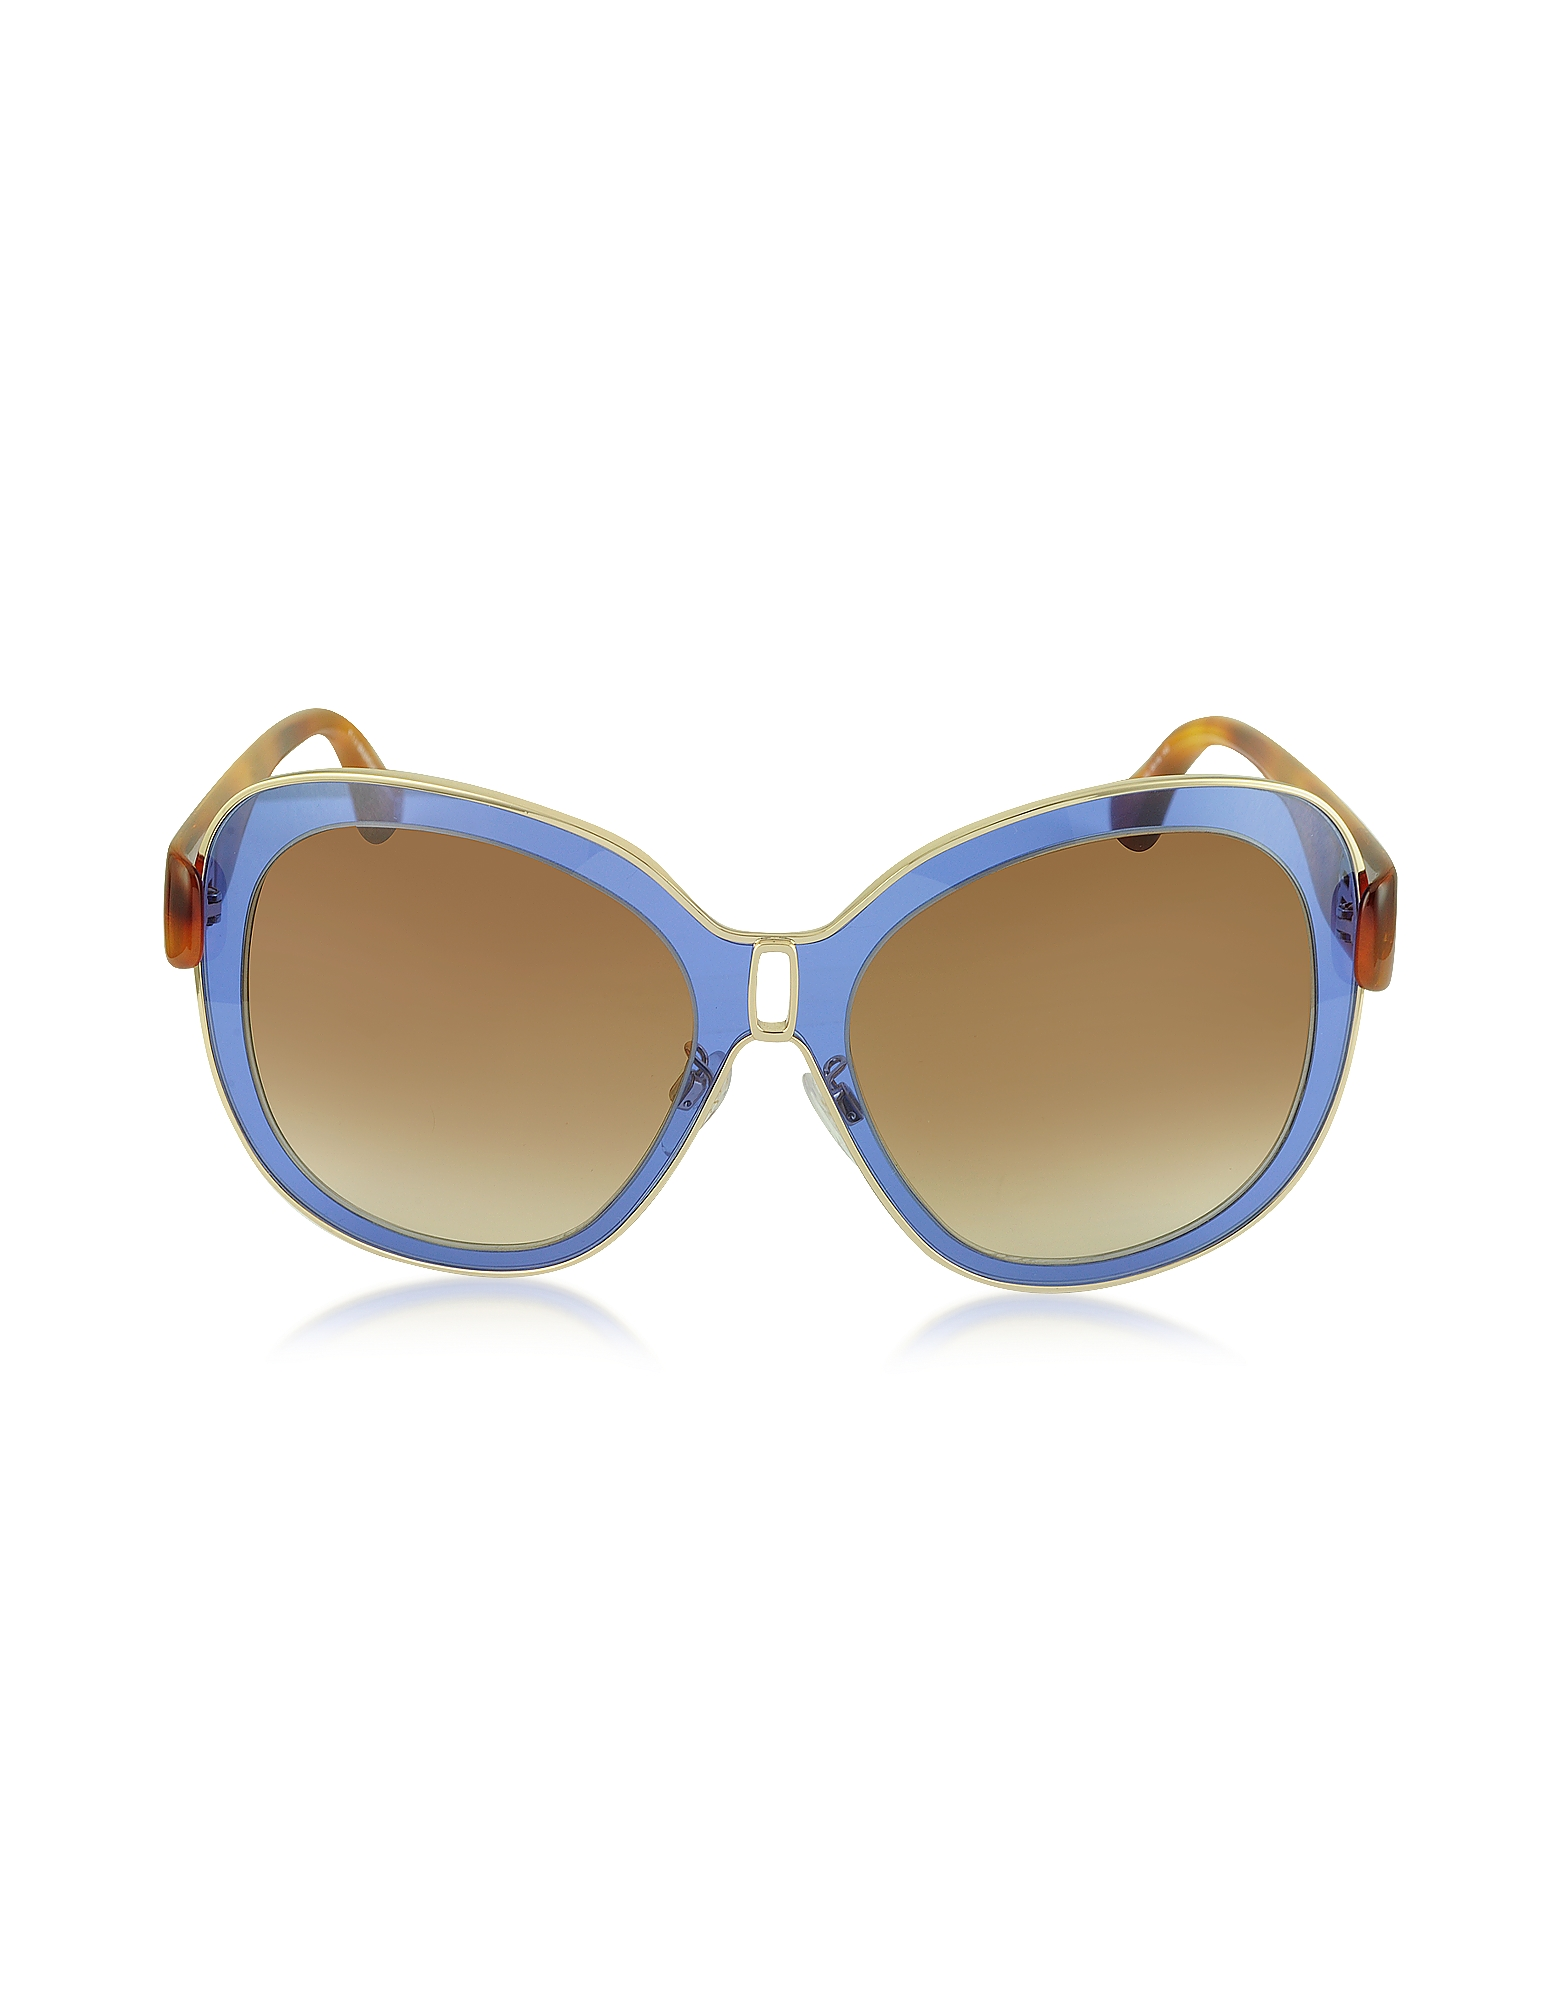 Balenciaga Sunglasses, BA0003 55B Blue Acetate & Gold Metal Women's Sunglasses